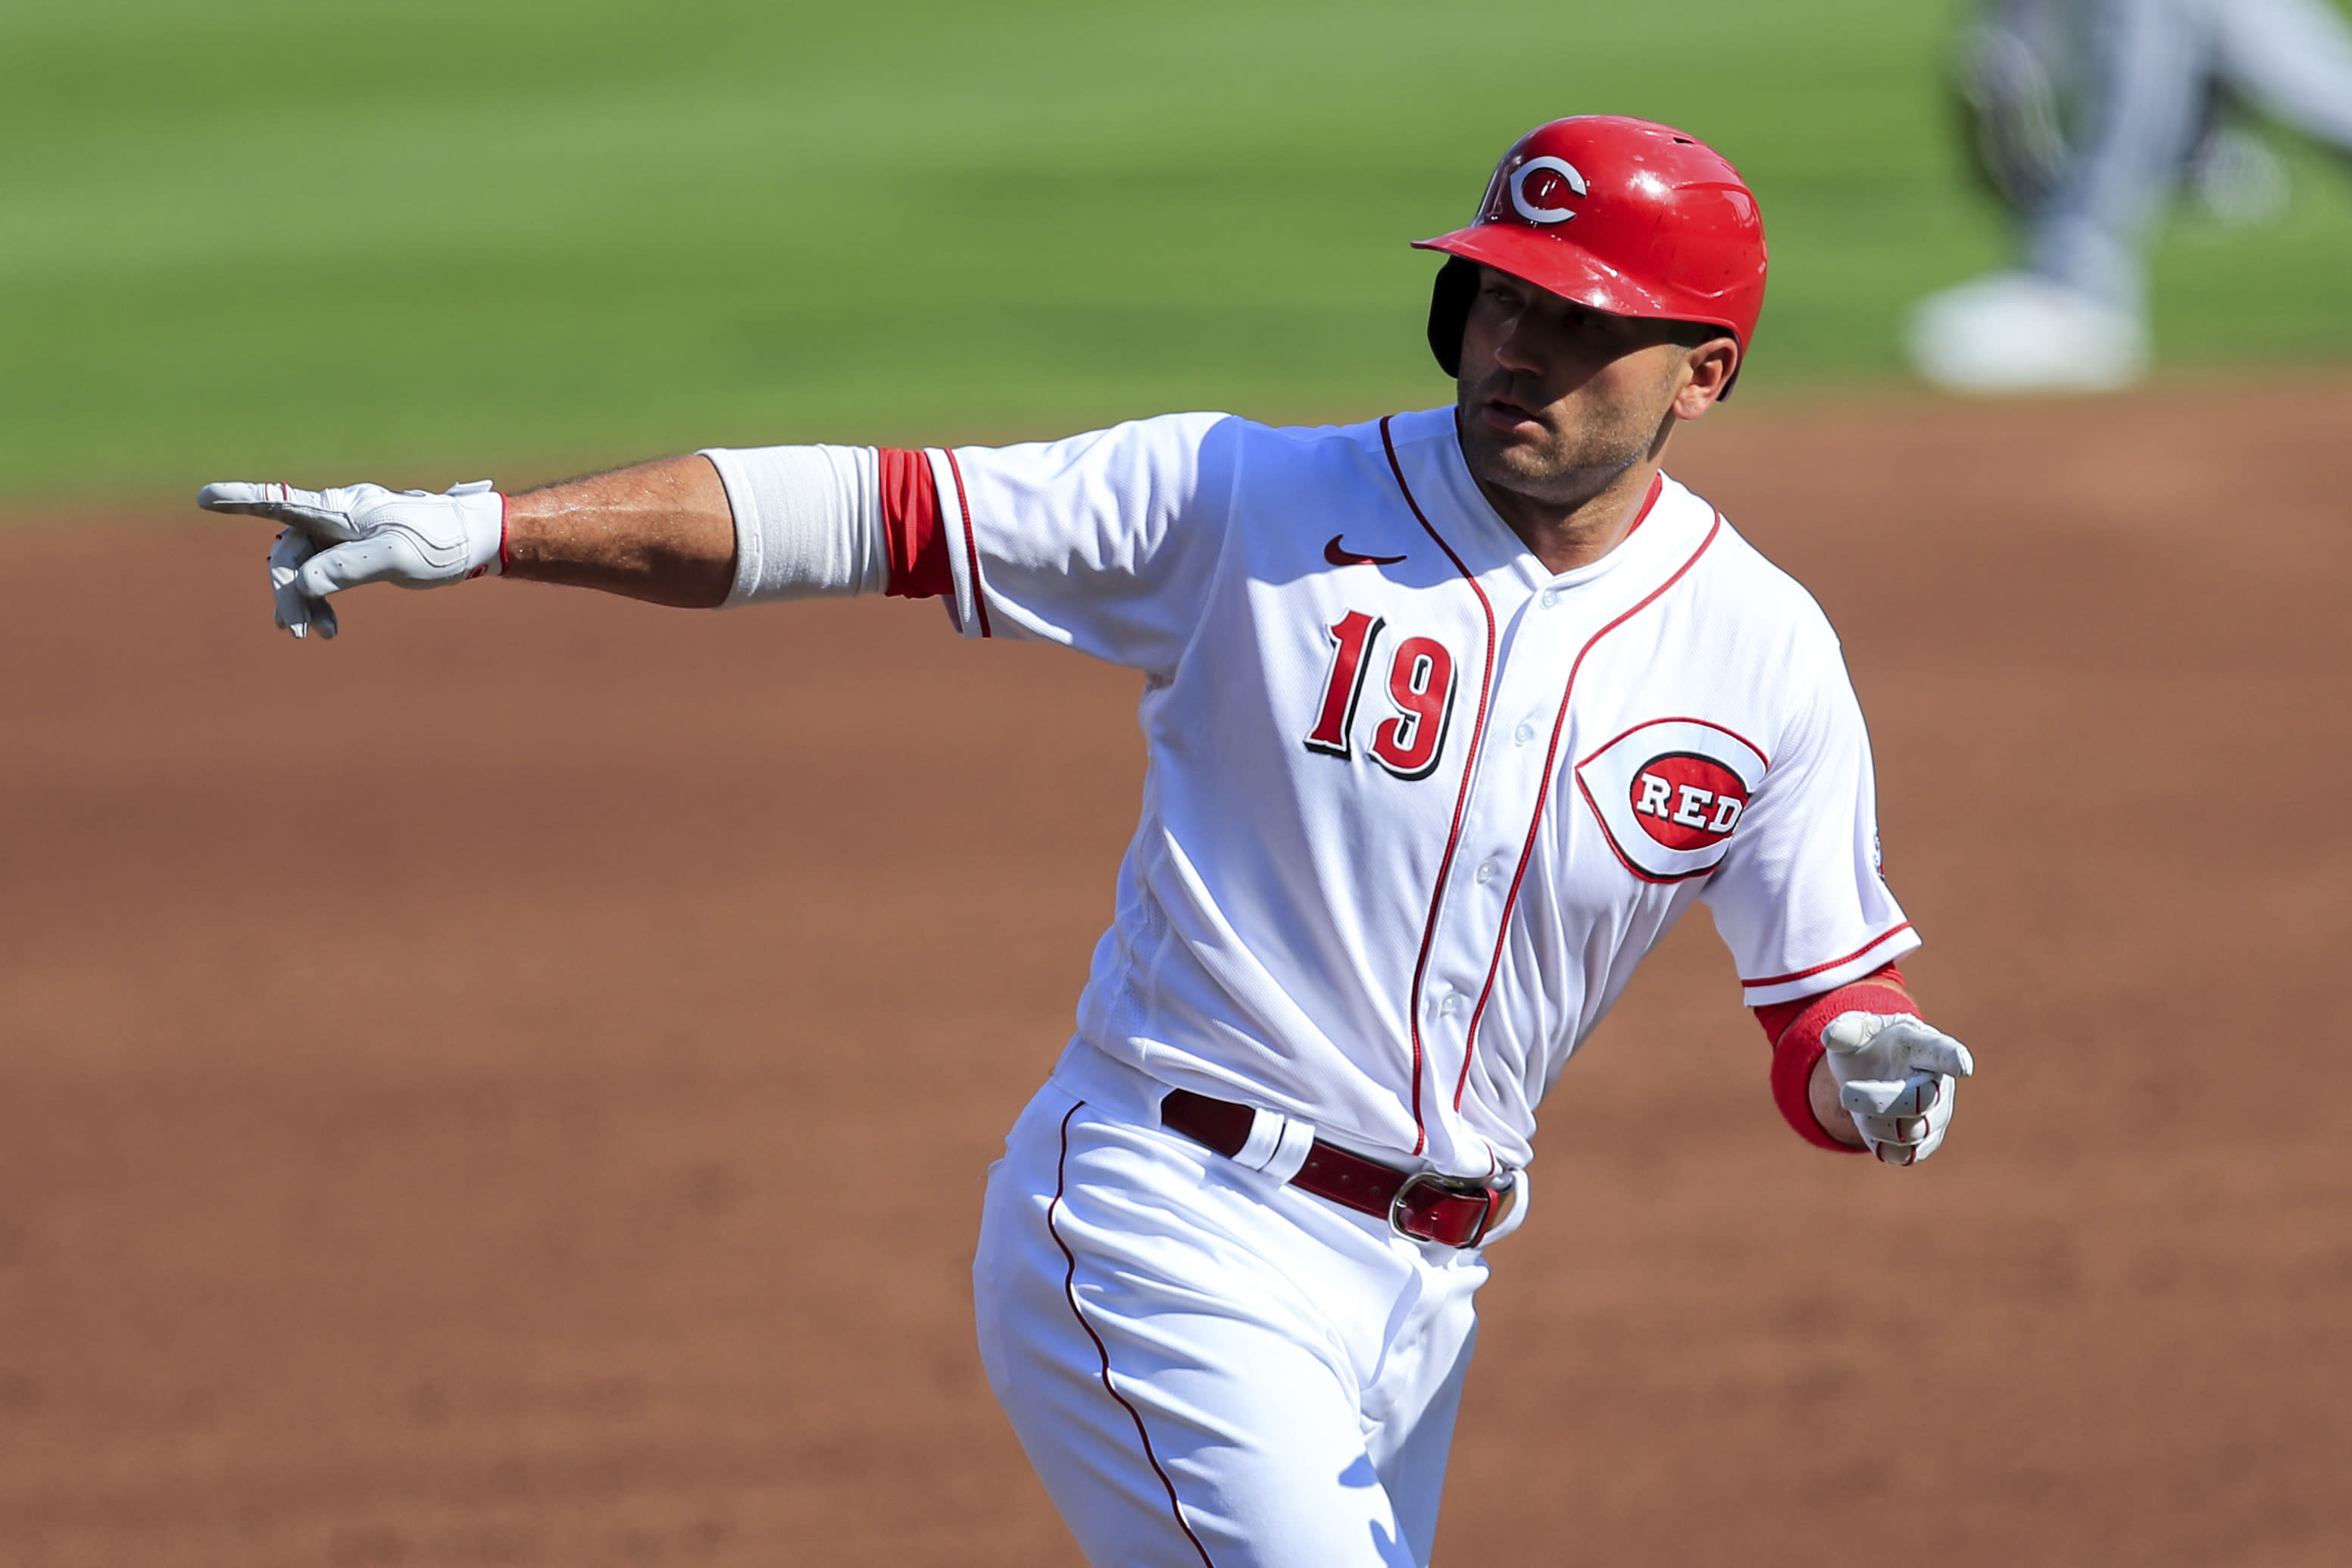 Cincinnati Reds' Joey Votto (19) points to members of the grounds crew after he hit a solo home run in the first inning during a baseball game against the Detroit Tigers at Great American Ballpark in Cincinnati, Saturday, July 25, 2020. (AP Photo/Aaron Doster)